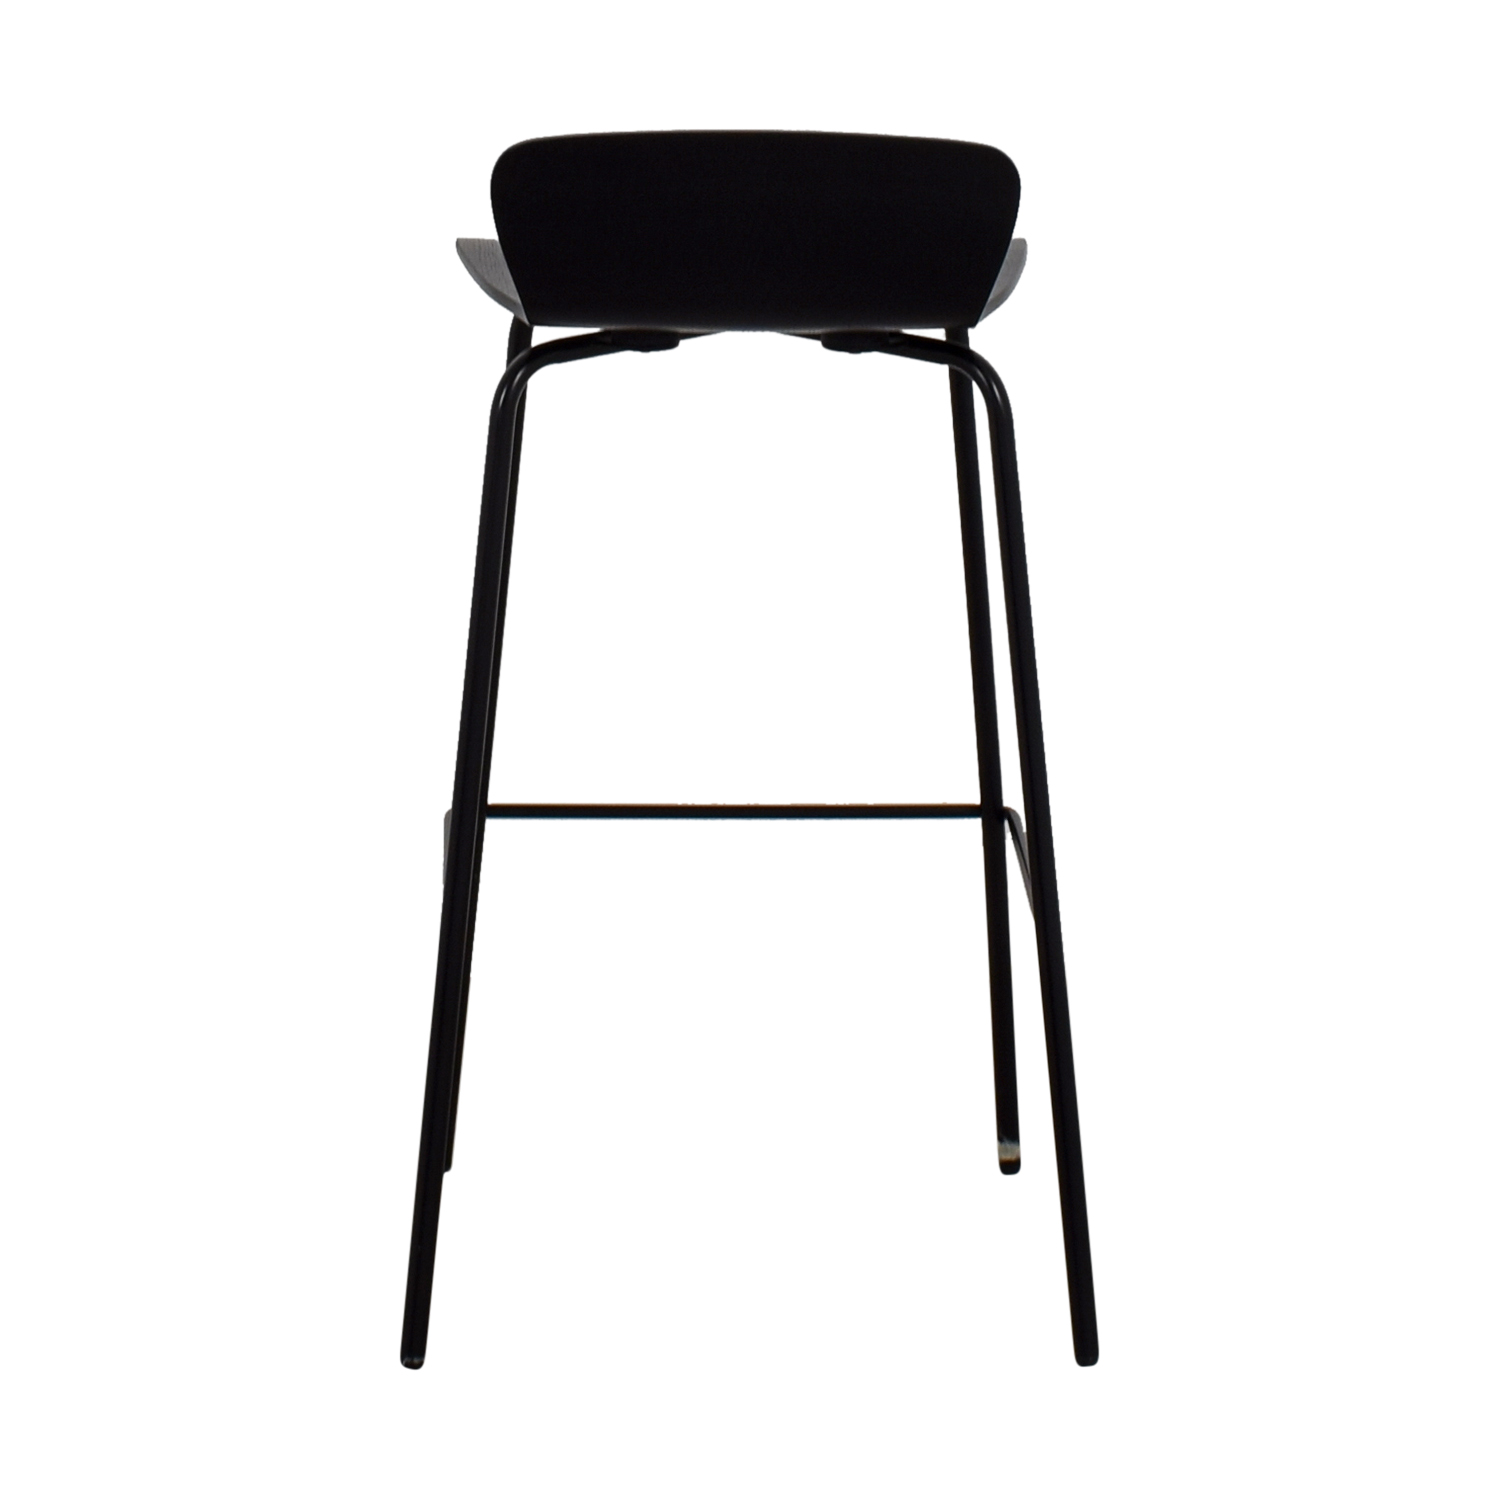 buy Crate & Barrel Black Barstool Crate & Barrel